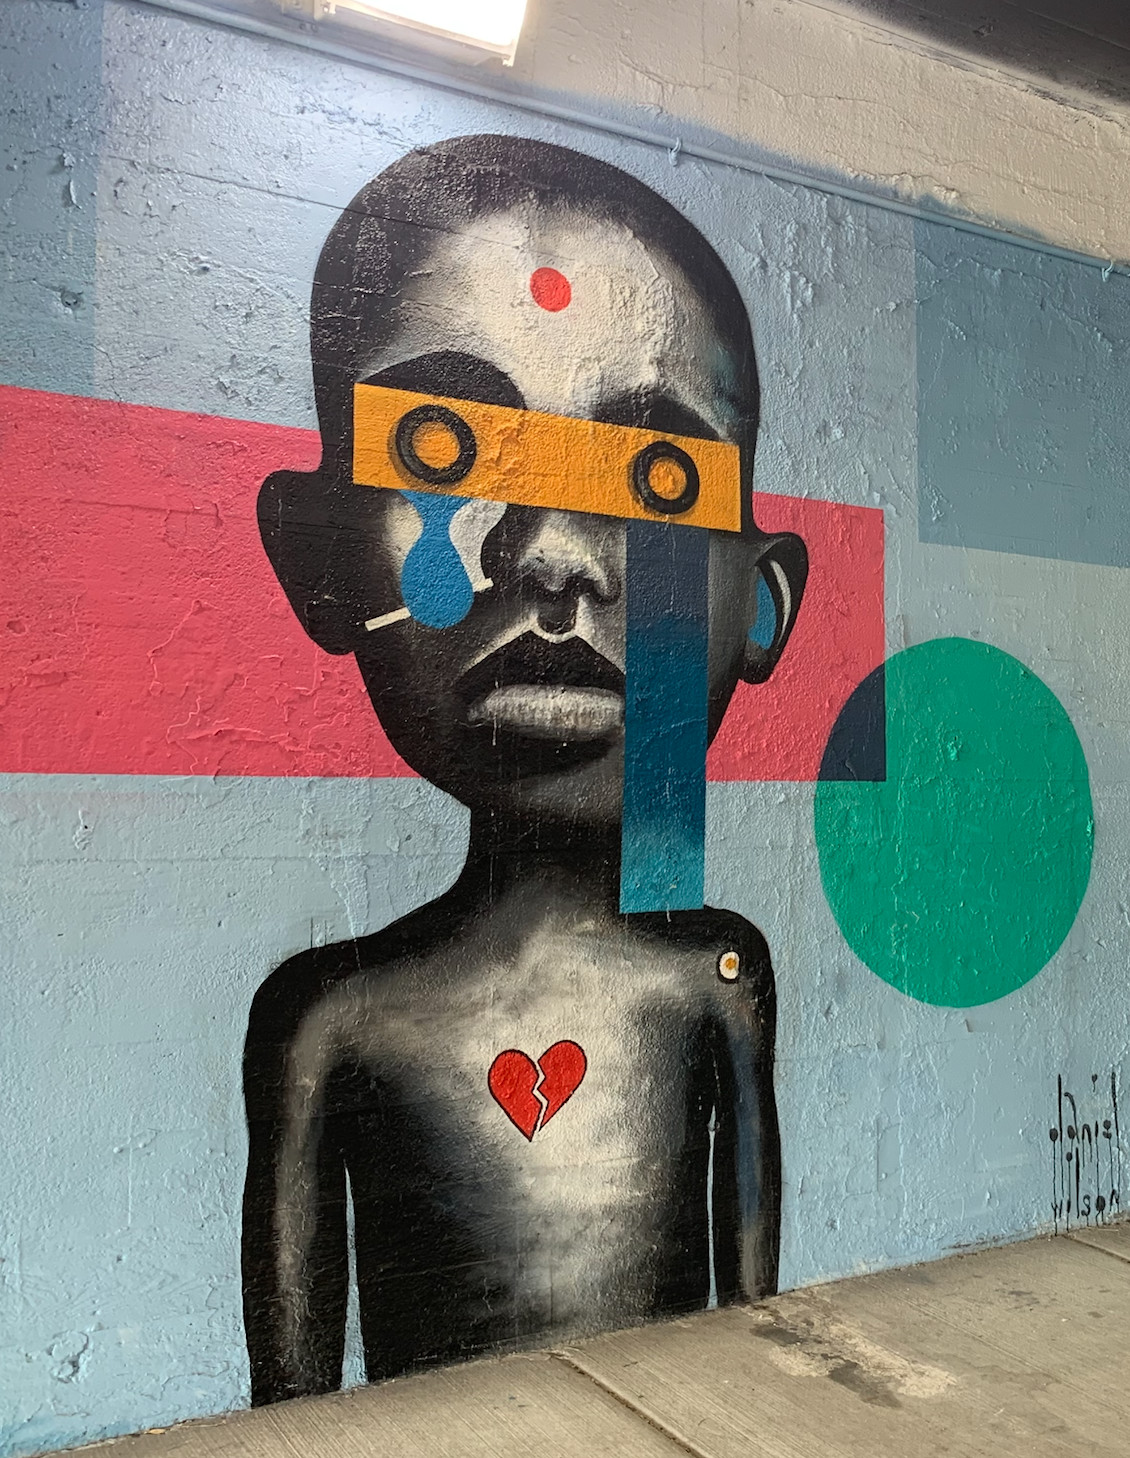 """Daniel Wilson says this mural is """"based on a canvas that I did. I was doing a portrait and didn't like the eyes."""" So he decided to obscure them. He's from Britain, lives in Humboldt Park and works in Pilsen."""